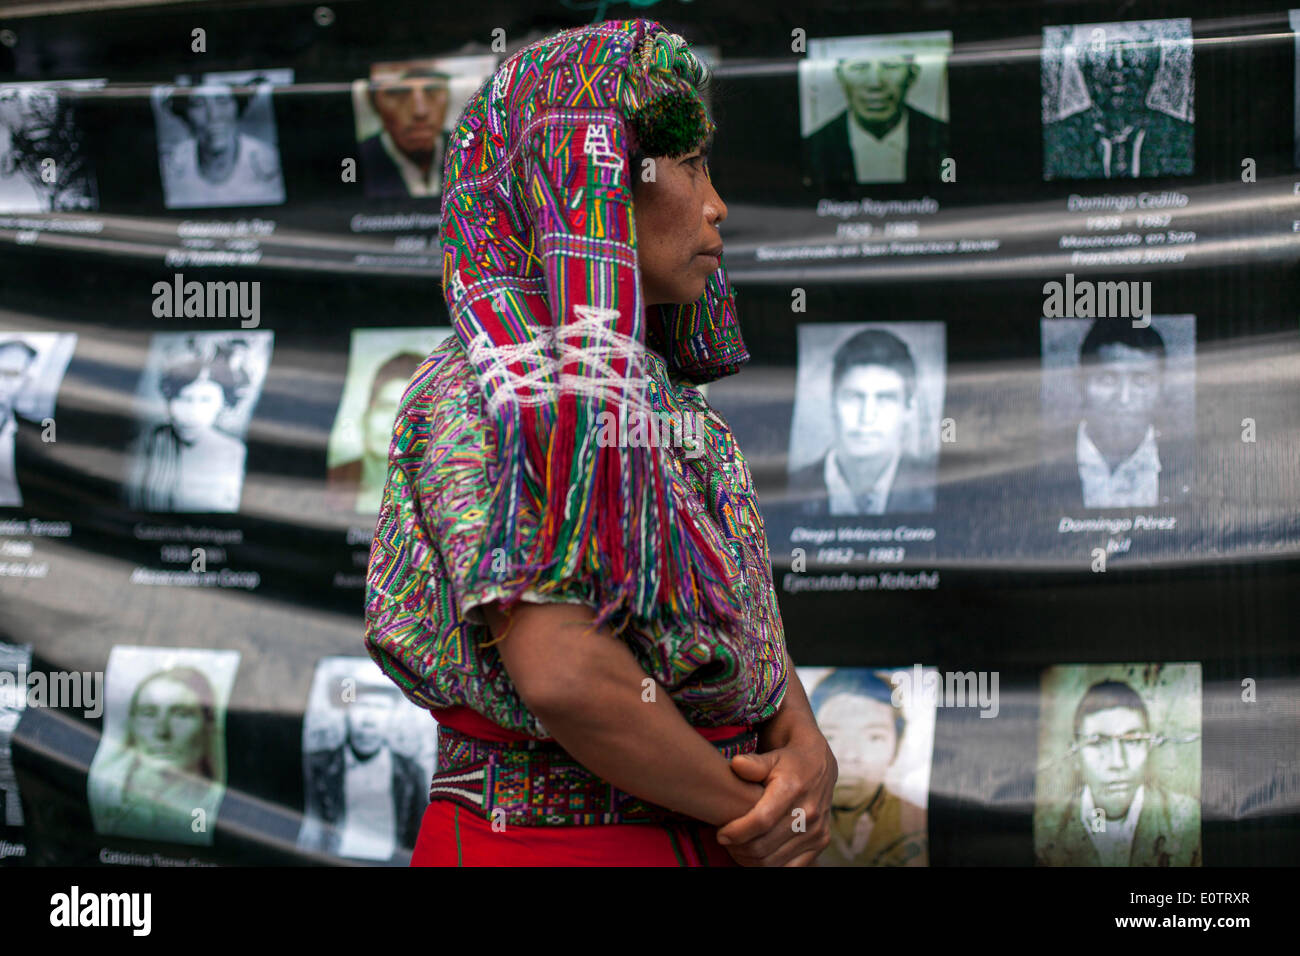 Guatemla City, Guatemala. 19th May, 2014. An indigenous woman of the maya-ixil ethnicity is seen in front of a banner with images of the faces of people that went missing during the Guatemalan internal armed conflcit (1960-1996), during a protest in front of the Legislative Palace, in Guatemala City, capital of Guatemala, on May 19, 2014. Credit:  Luis Echeverria/Xinhua/Alamy Live News - Stock Image